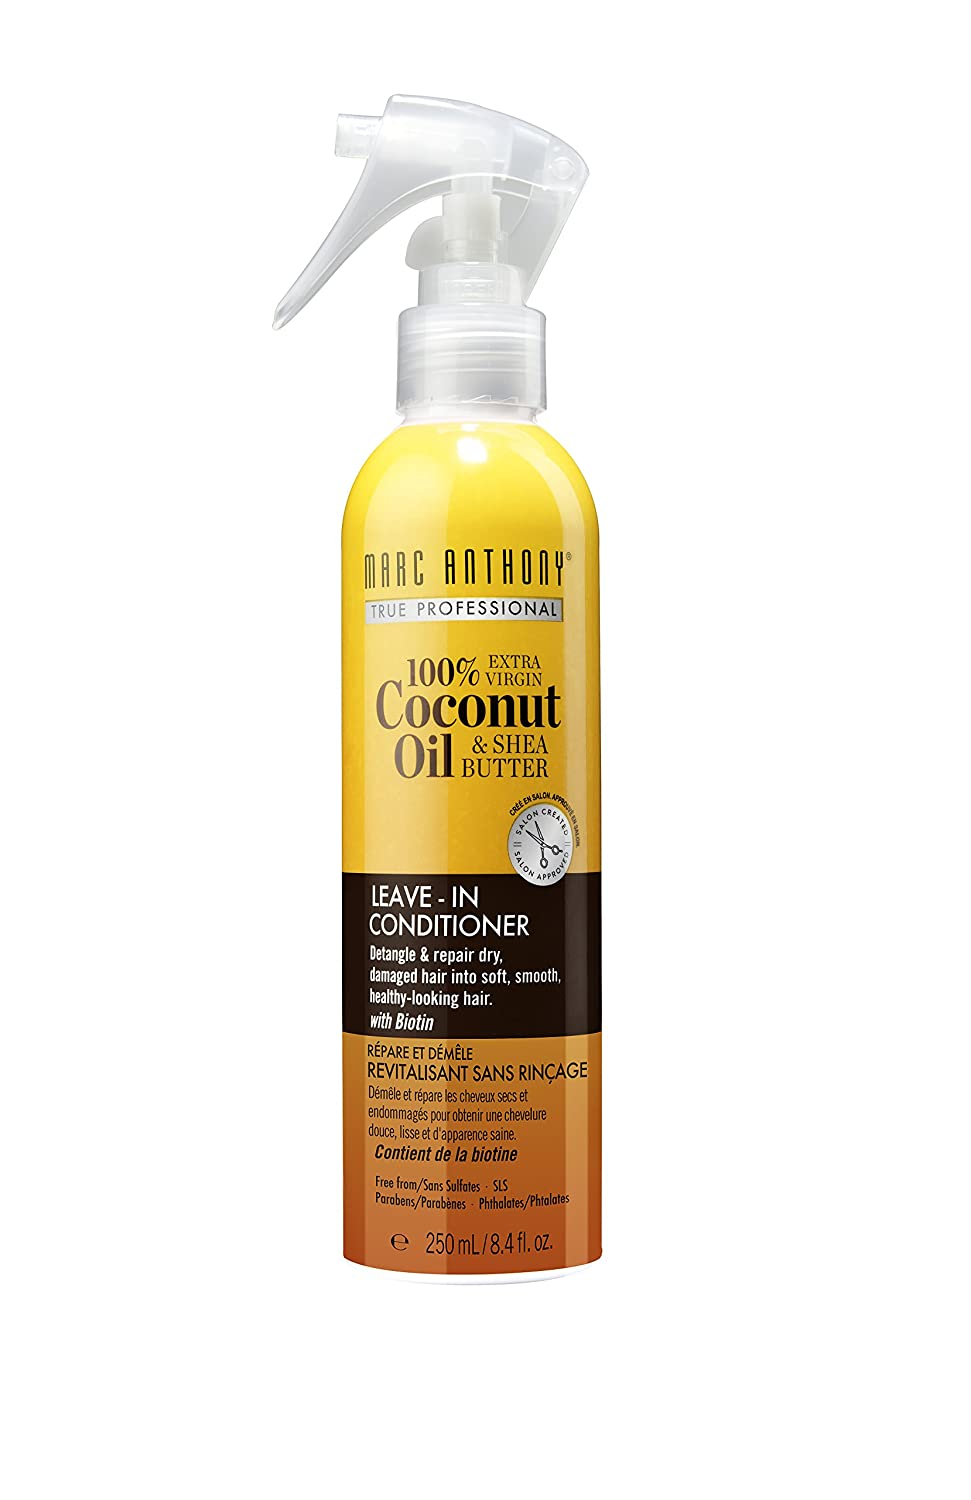 Marc Anthony Coconut Oil & Shea Butter Leave-In Conditioner, 8.4 Ounces